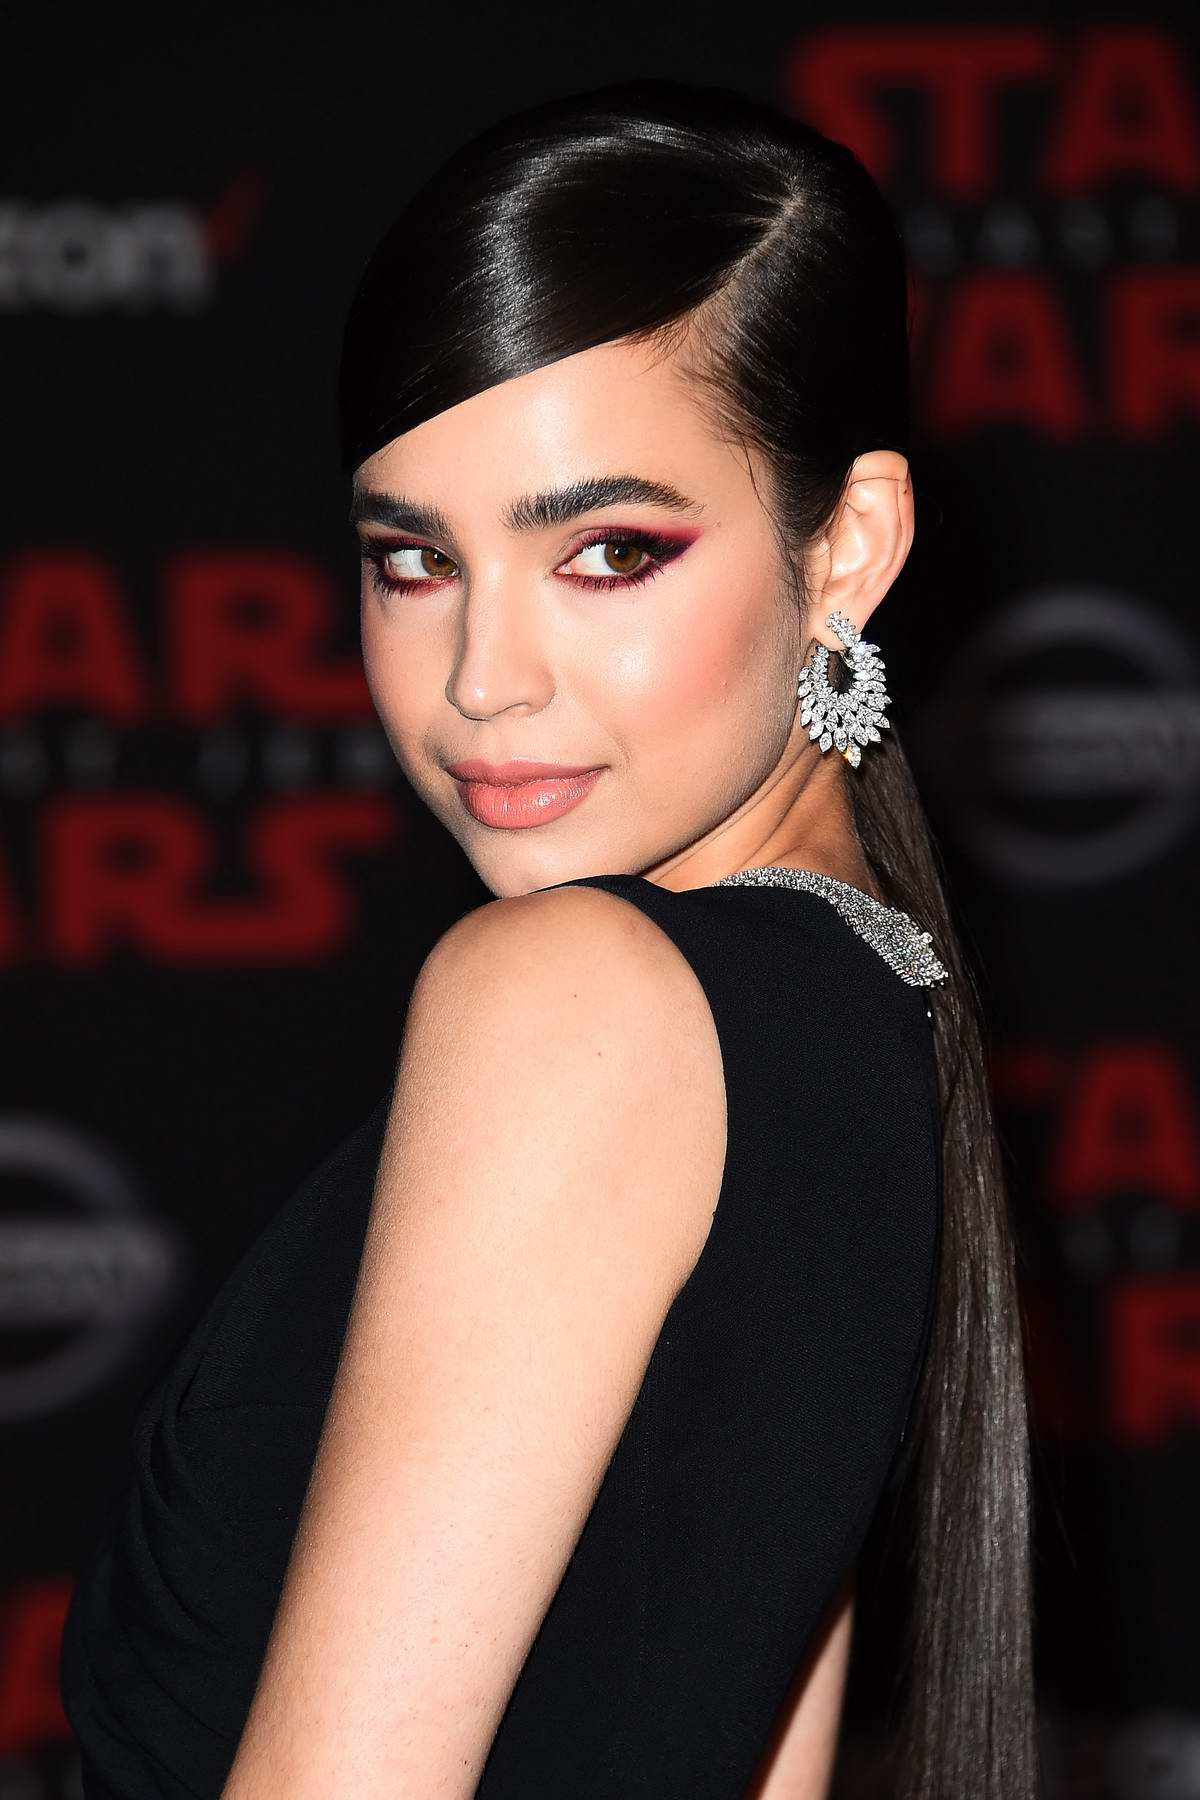 Sofia Carson at the World premiere for 'Star Wars: The Last Jedi' at the Shrine Auditorium in Los Angeles